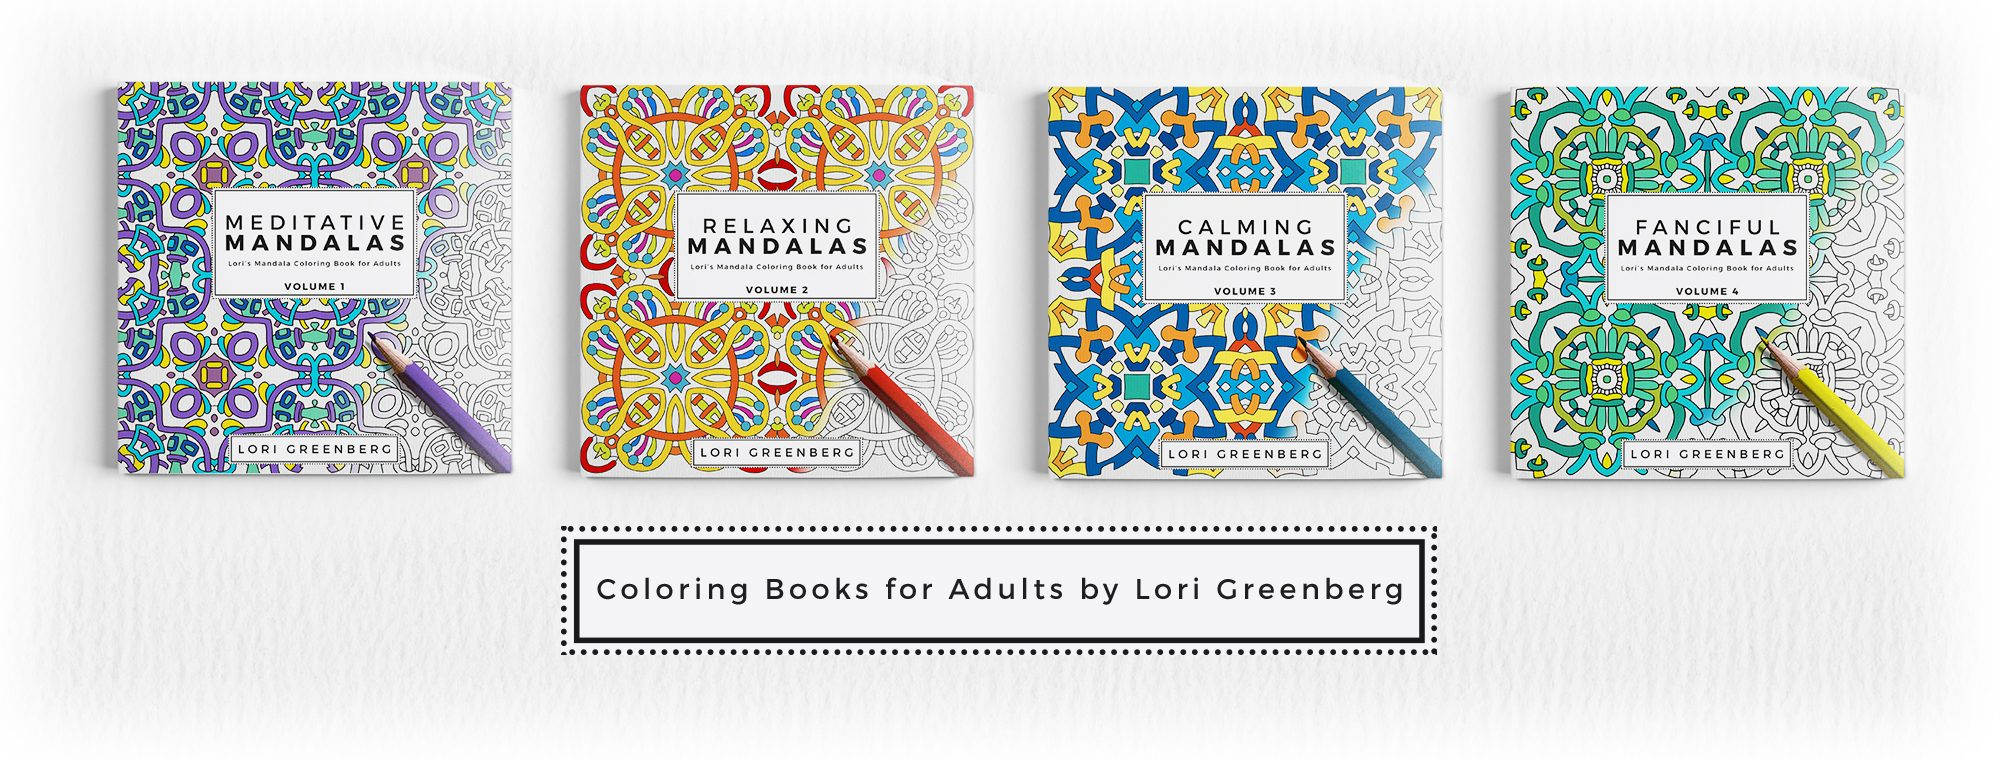 Lori Greenberg Coloring Books for Adults